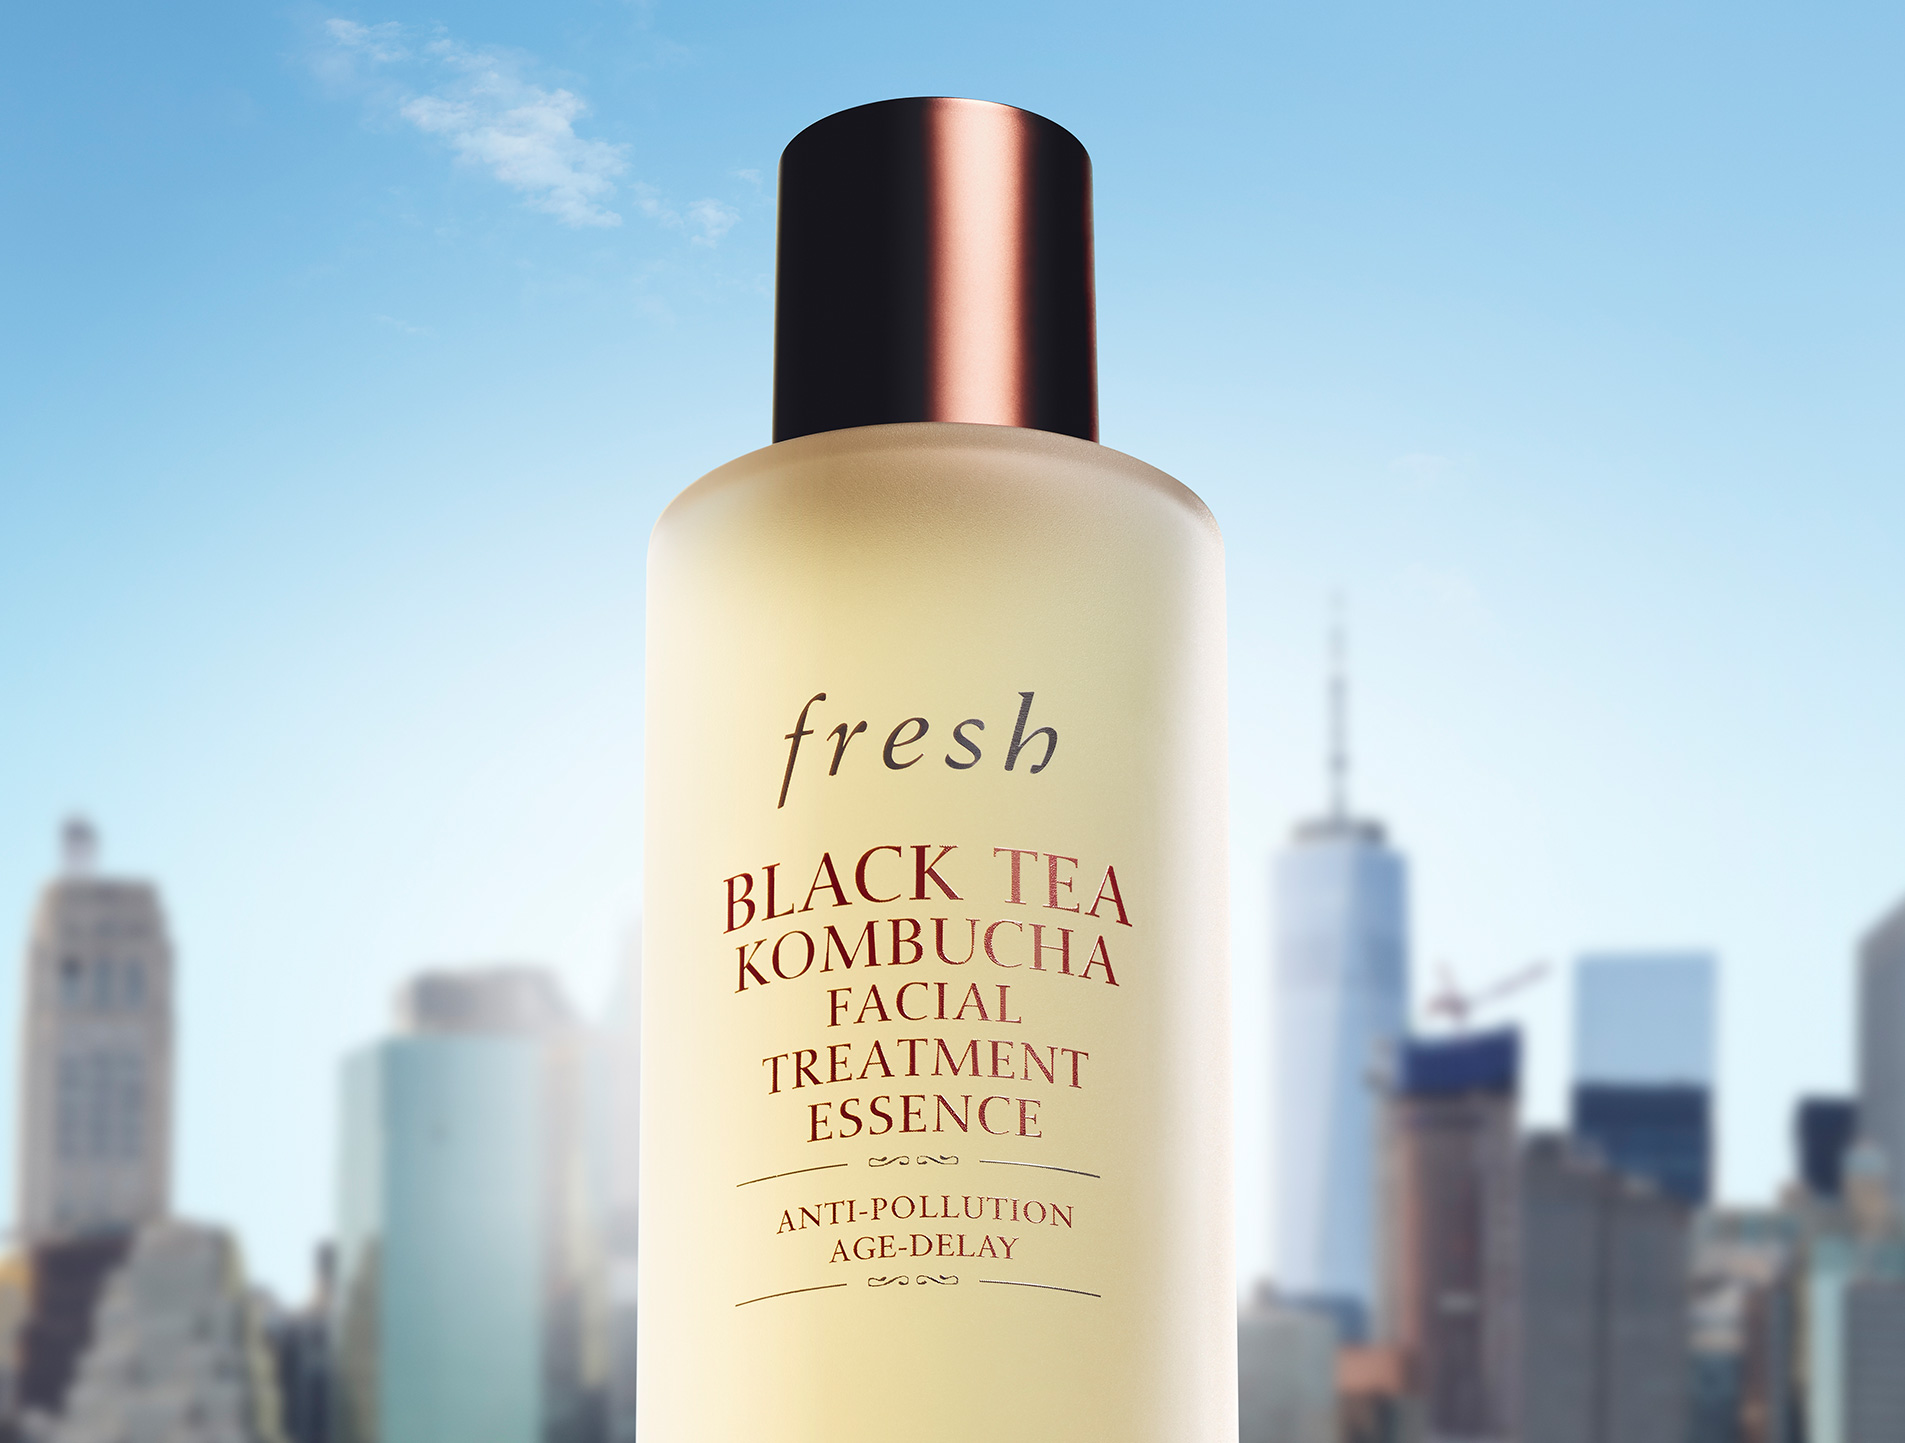 Fresh - Skin care, Perfumes and Fragrances, Makeup